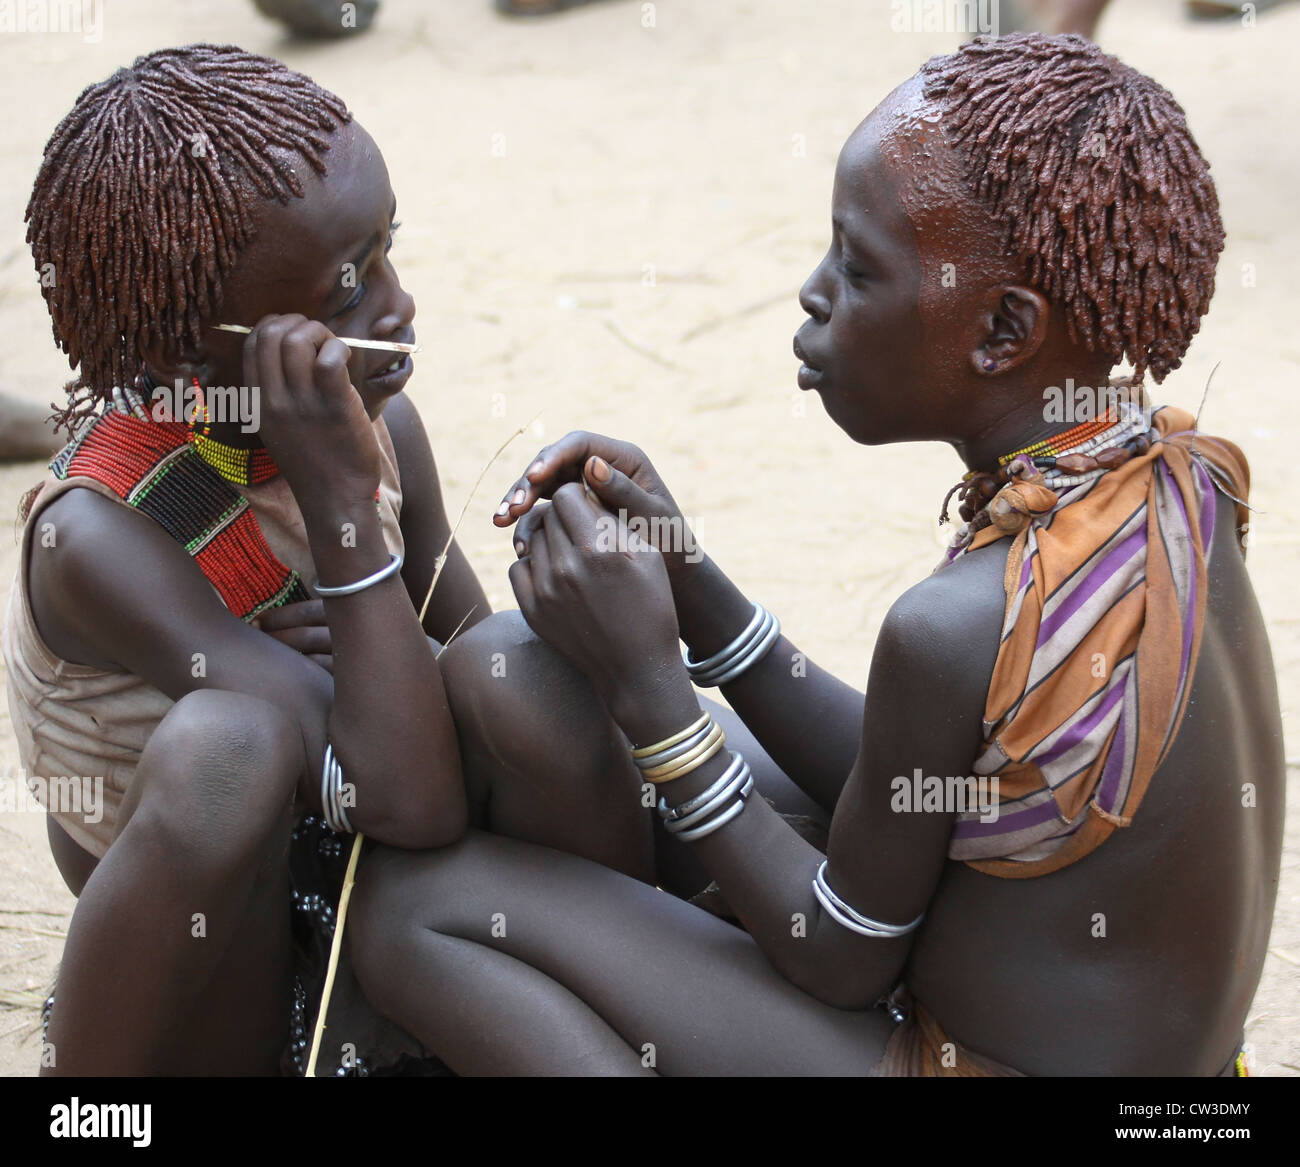 Africa, Ethiopia, Omo River Valley Hamer Tribe two young girls with ochre hair The hair is coated with ochre mud - Stock Image